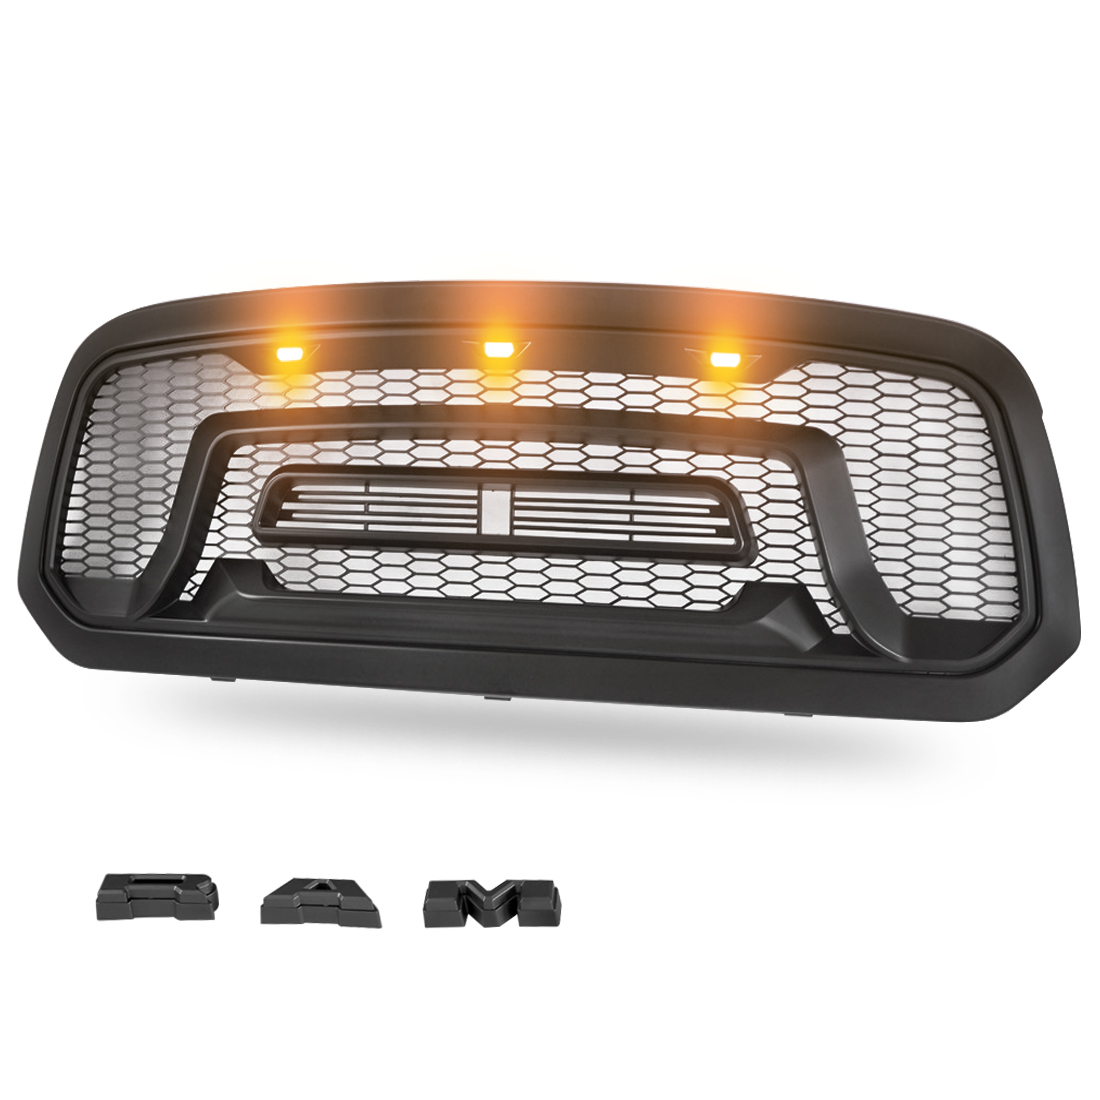 Matte Black Mesh Replacement Grill For 2013-2018 Dodge Ram 1500 Rebel Style Front Grille Honeycomb Bumper and Dodge Ram 1500 Accessories With Three LED Amber Lights